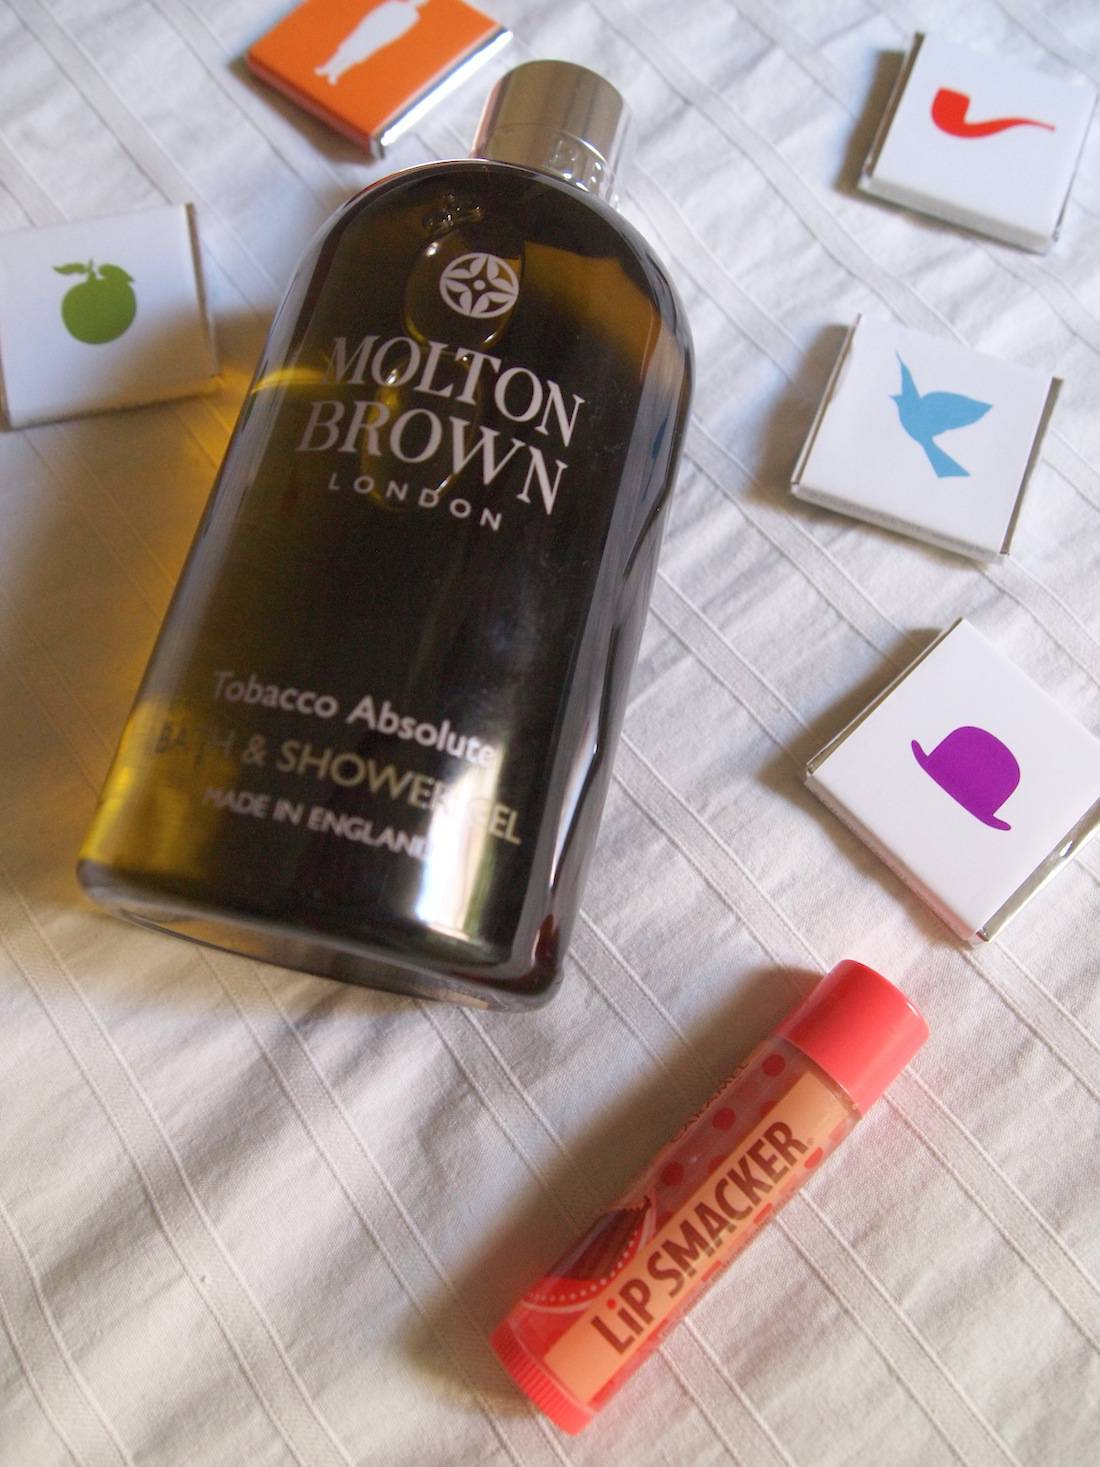 ysmf.molton.brown_.tobacco.absolute